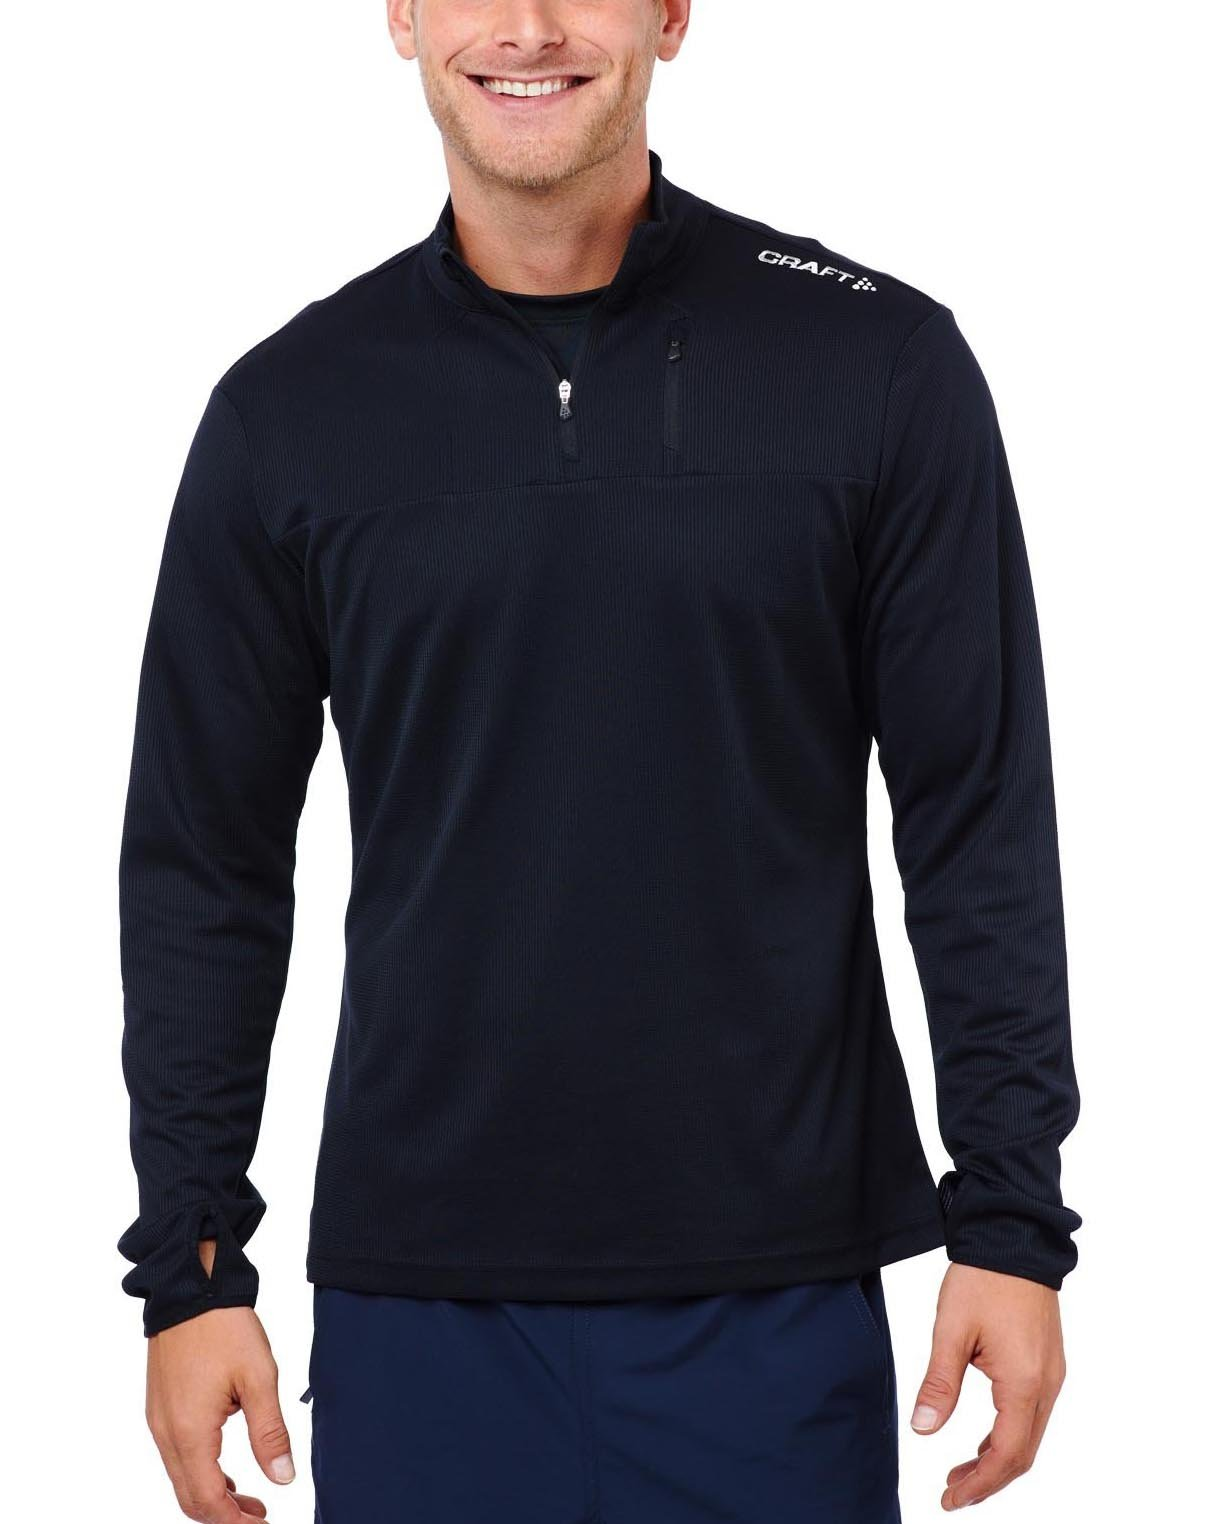 CRAFT SPARTAN By CRAFT Blaze Half Zip - Men's Black S